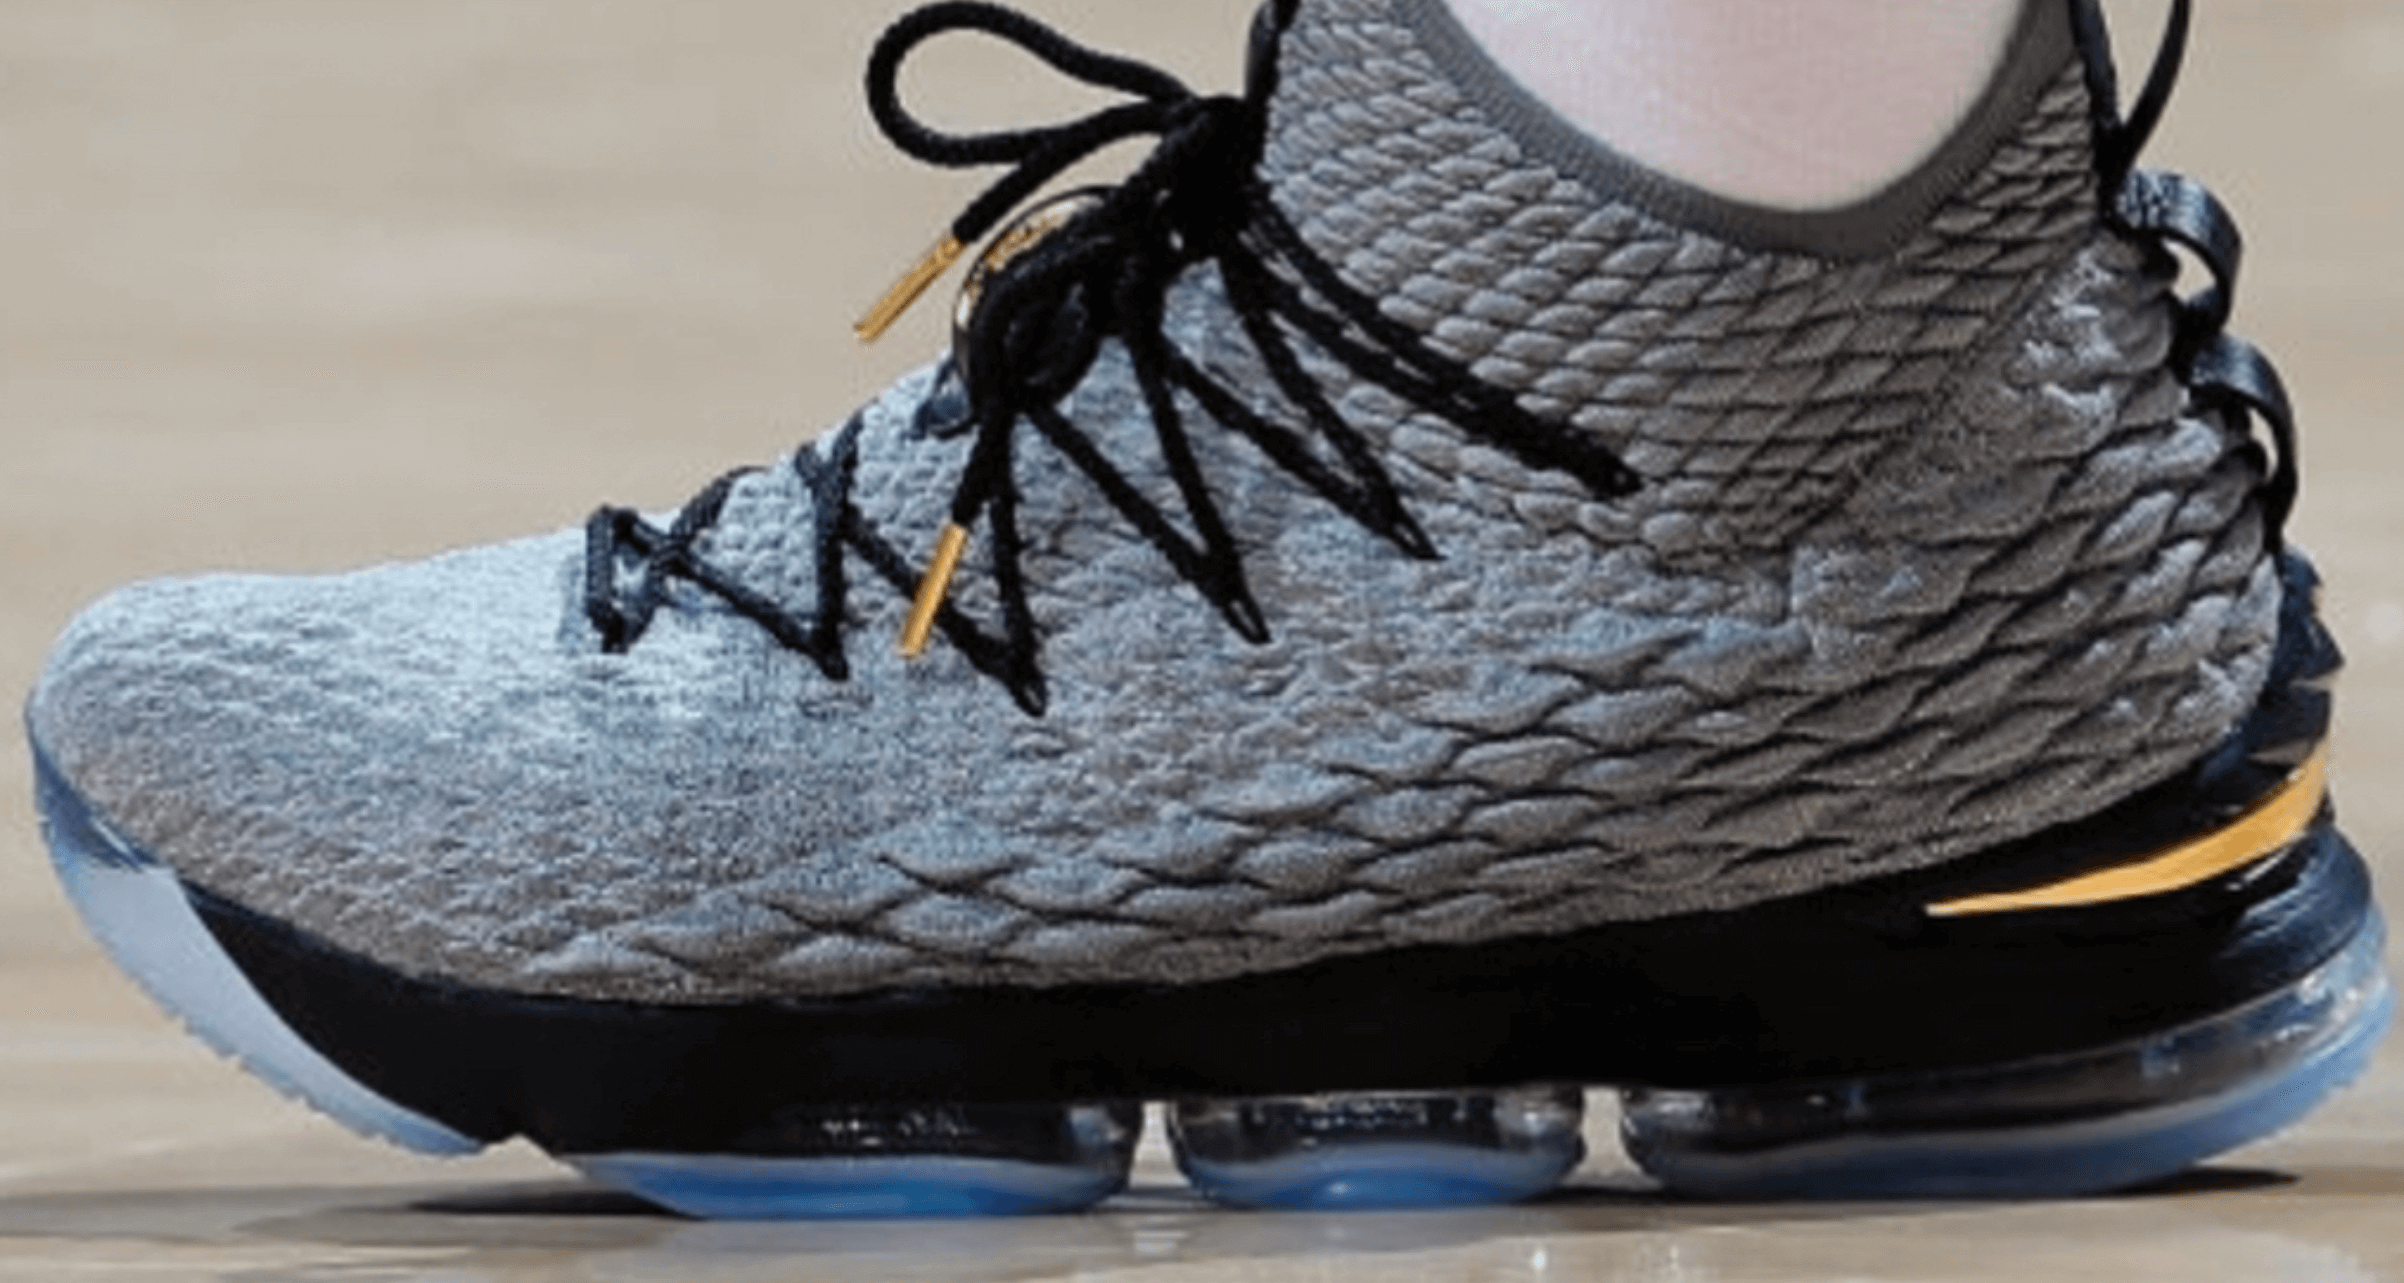 Lebron release dates 2019 in Australia